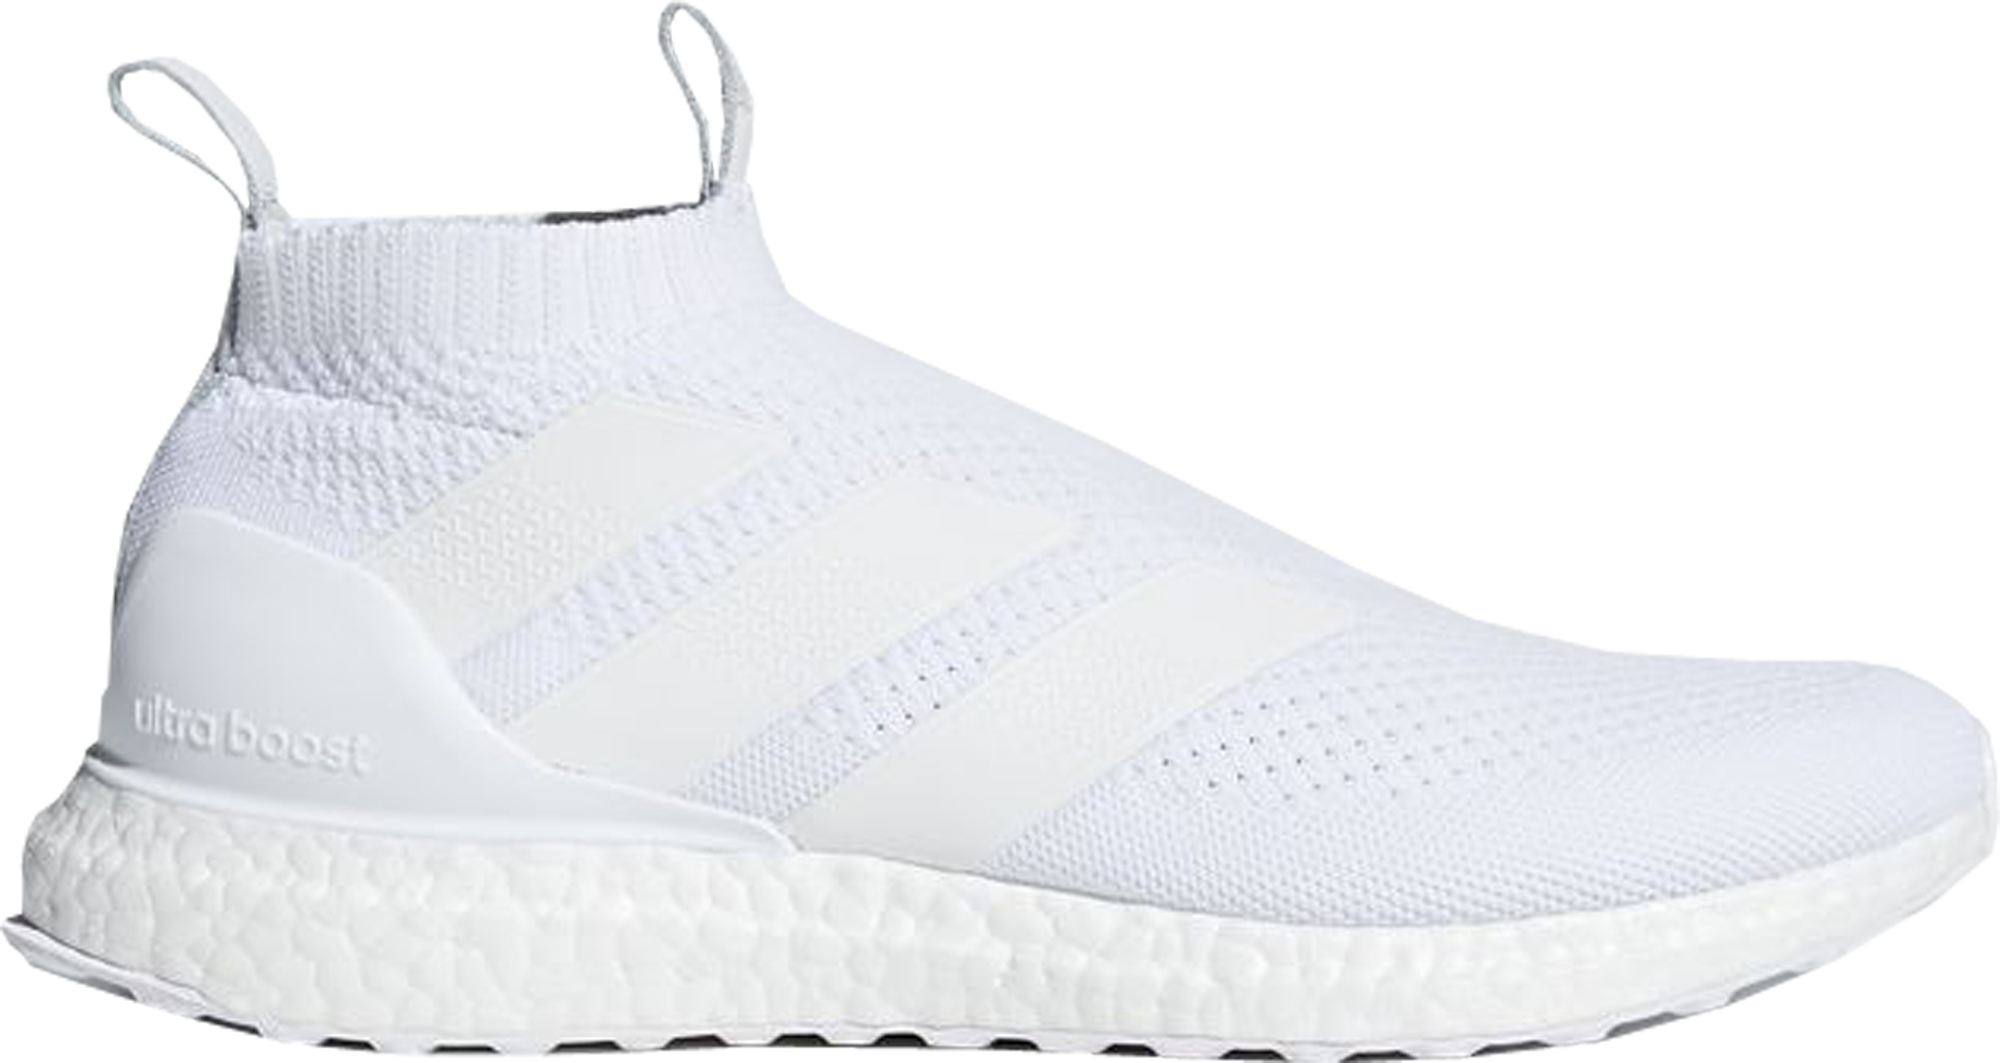 adidas ACE 16+ Ultra Boost Triple White